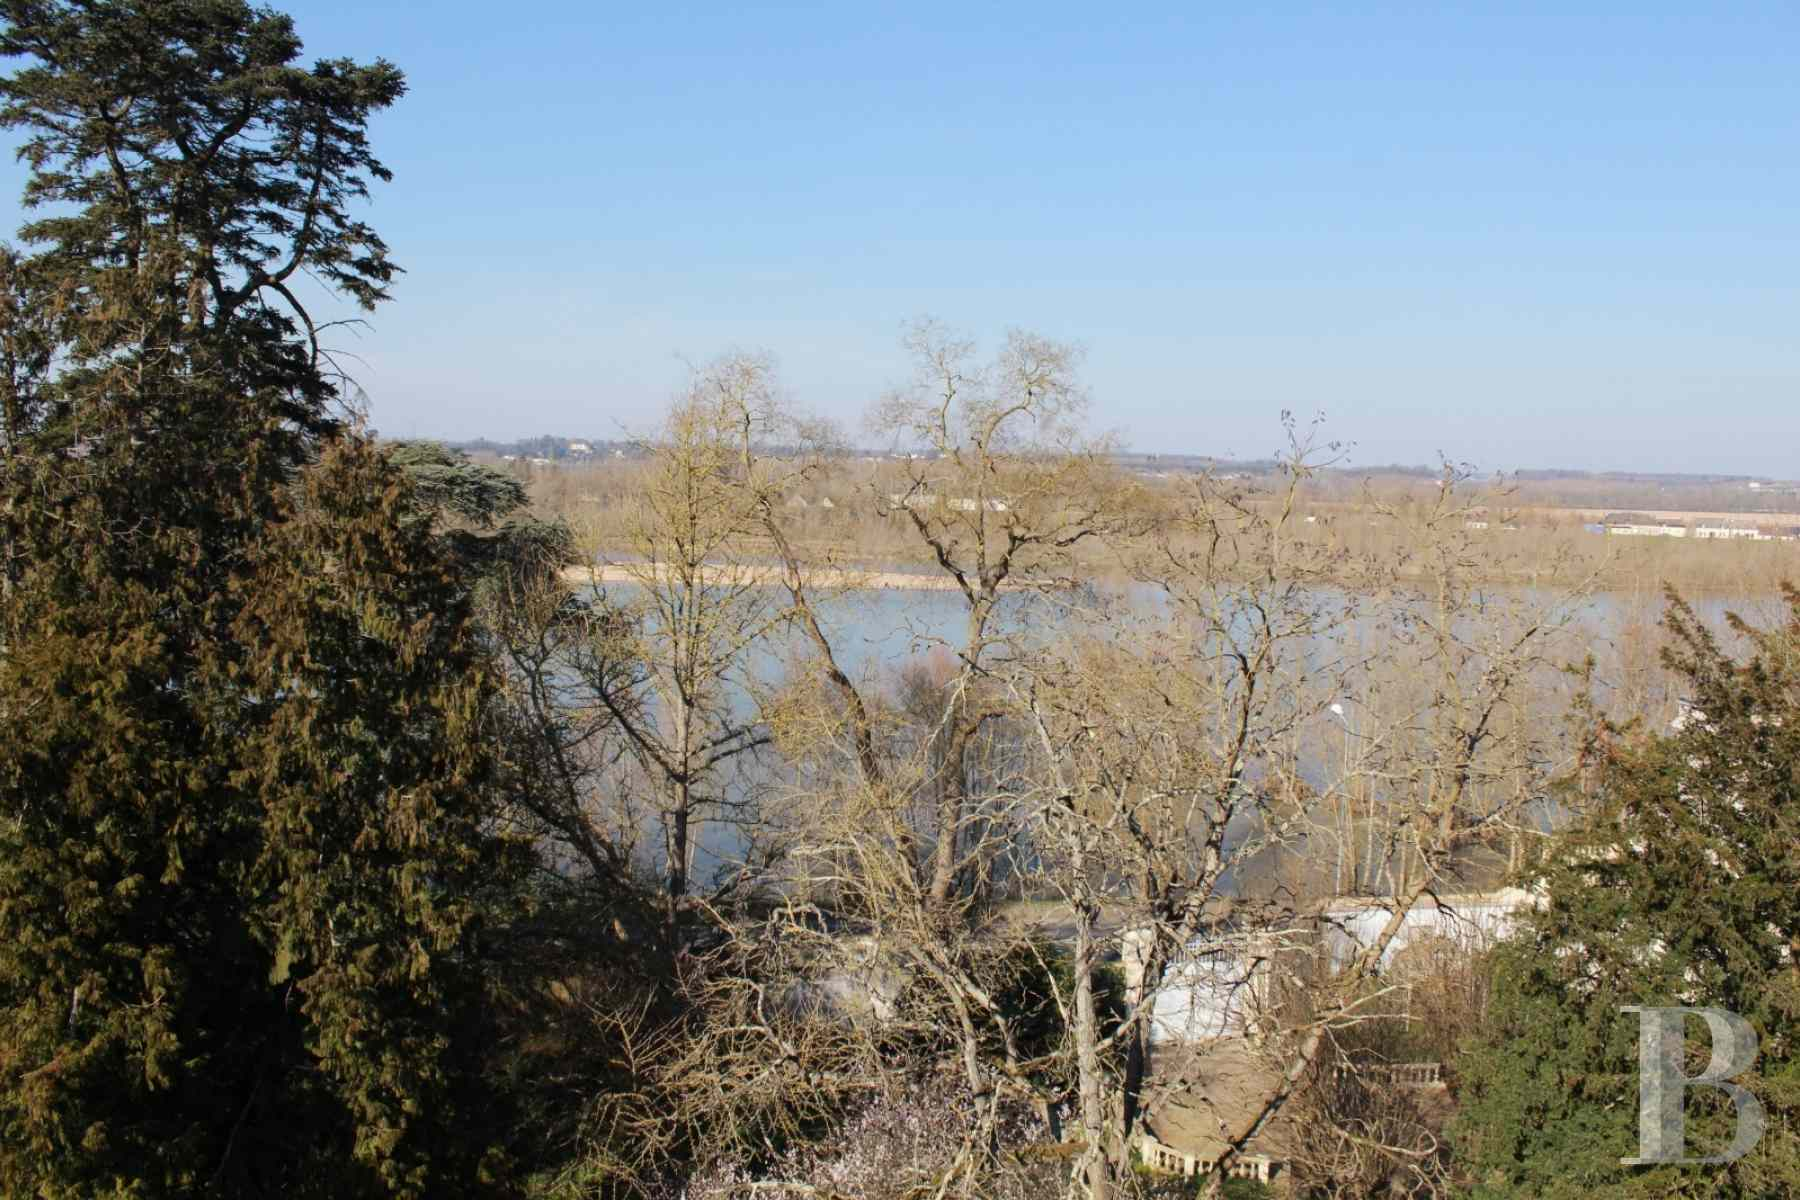 property for sale France center val de loire tours amboise - 11 zoom